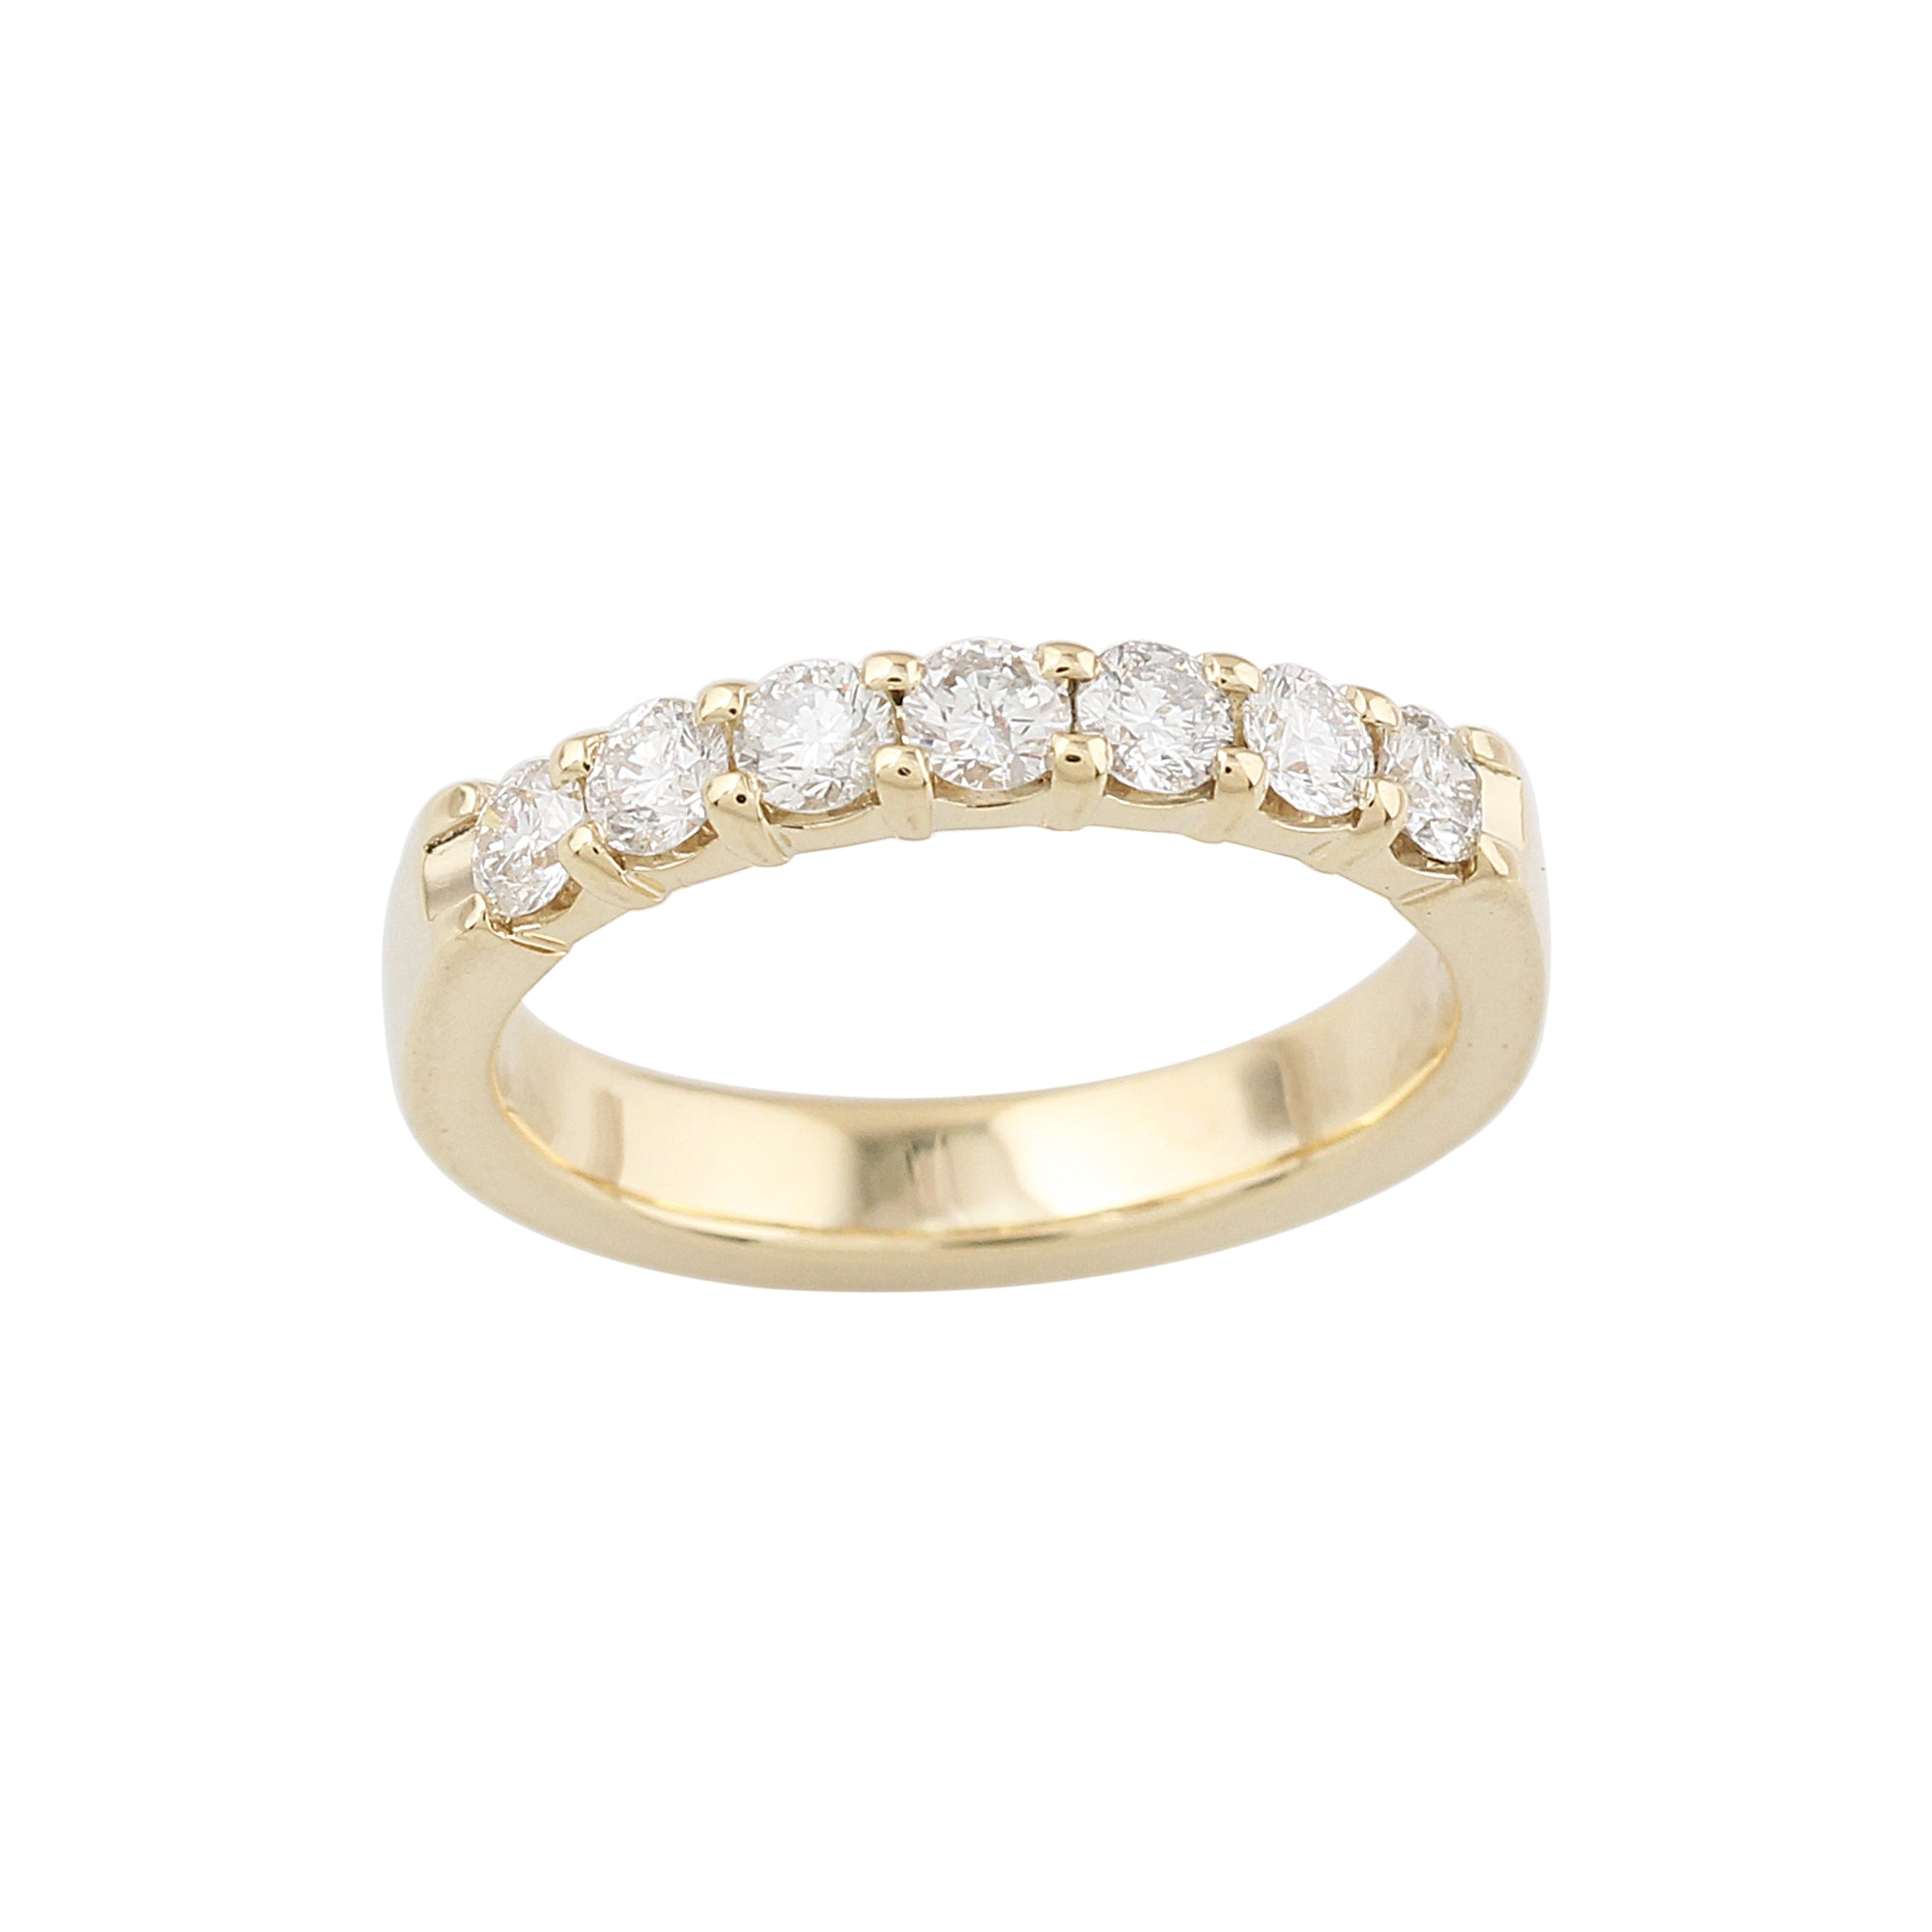 0 75 Ctw Diamond Band Ring Little Switzerland